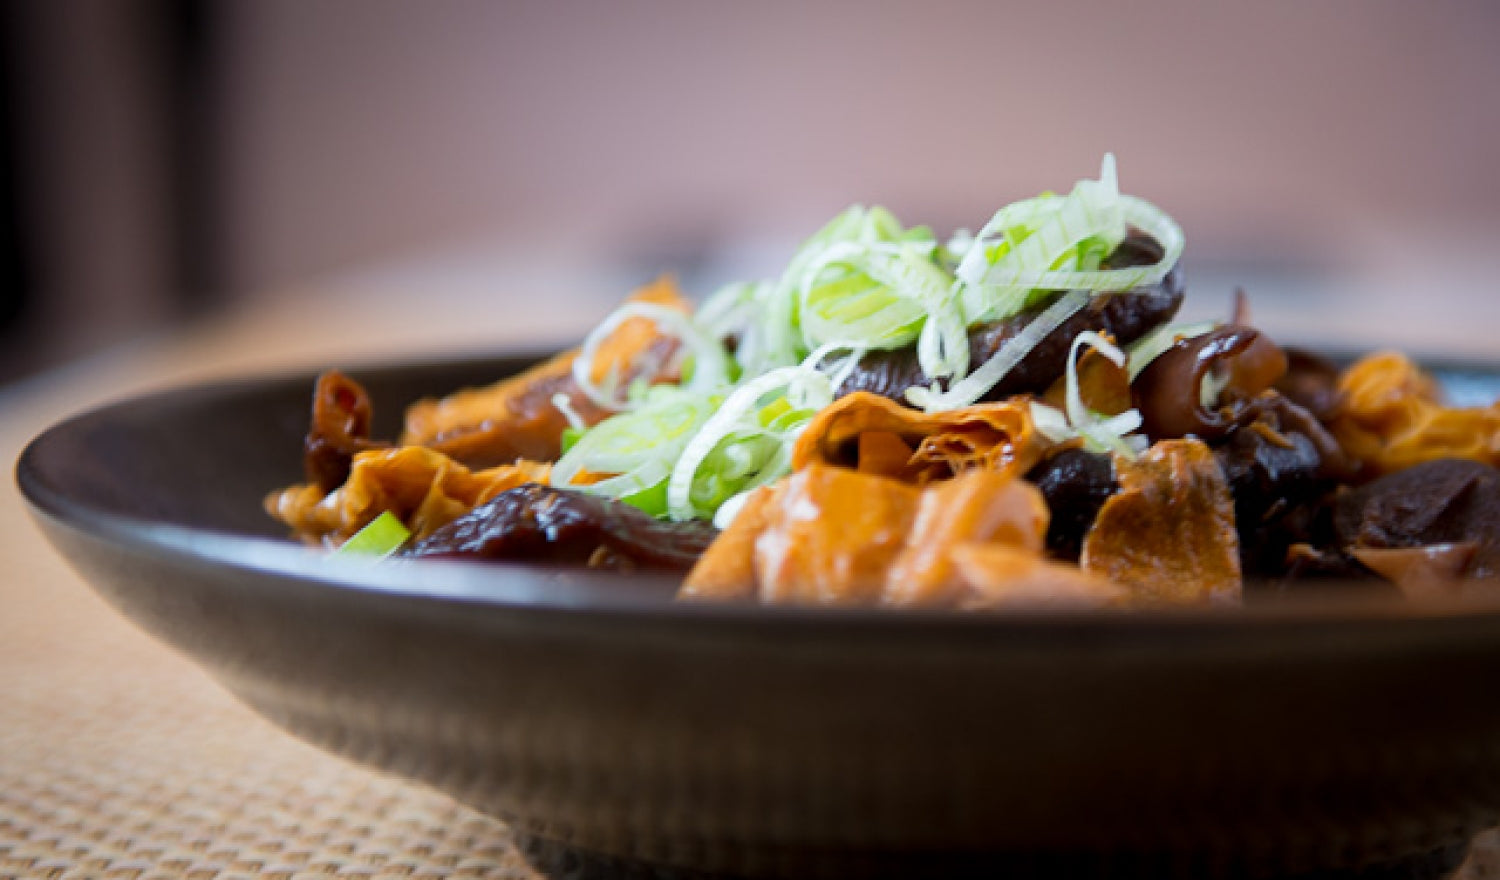 Braised Bean Curd Skin With Mushrooms Recipe